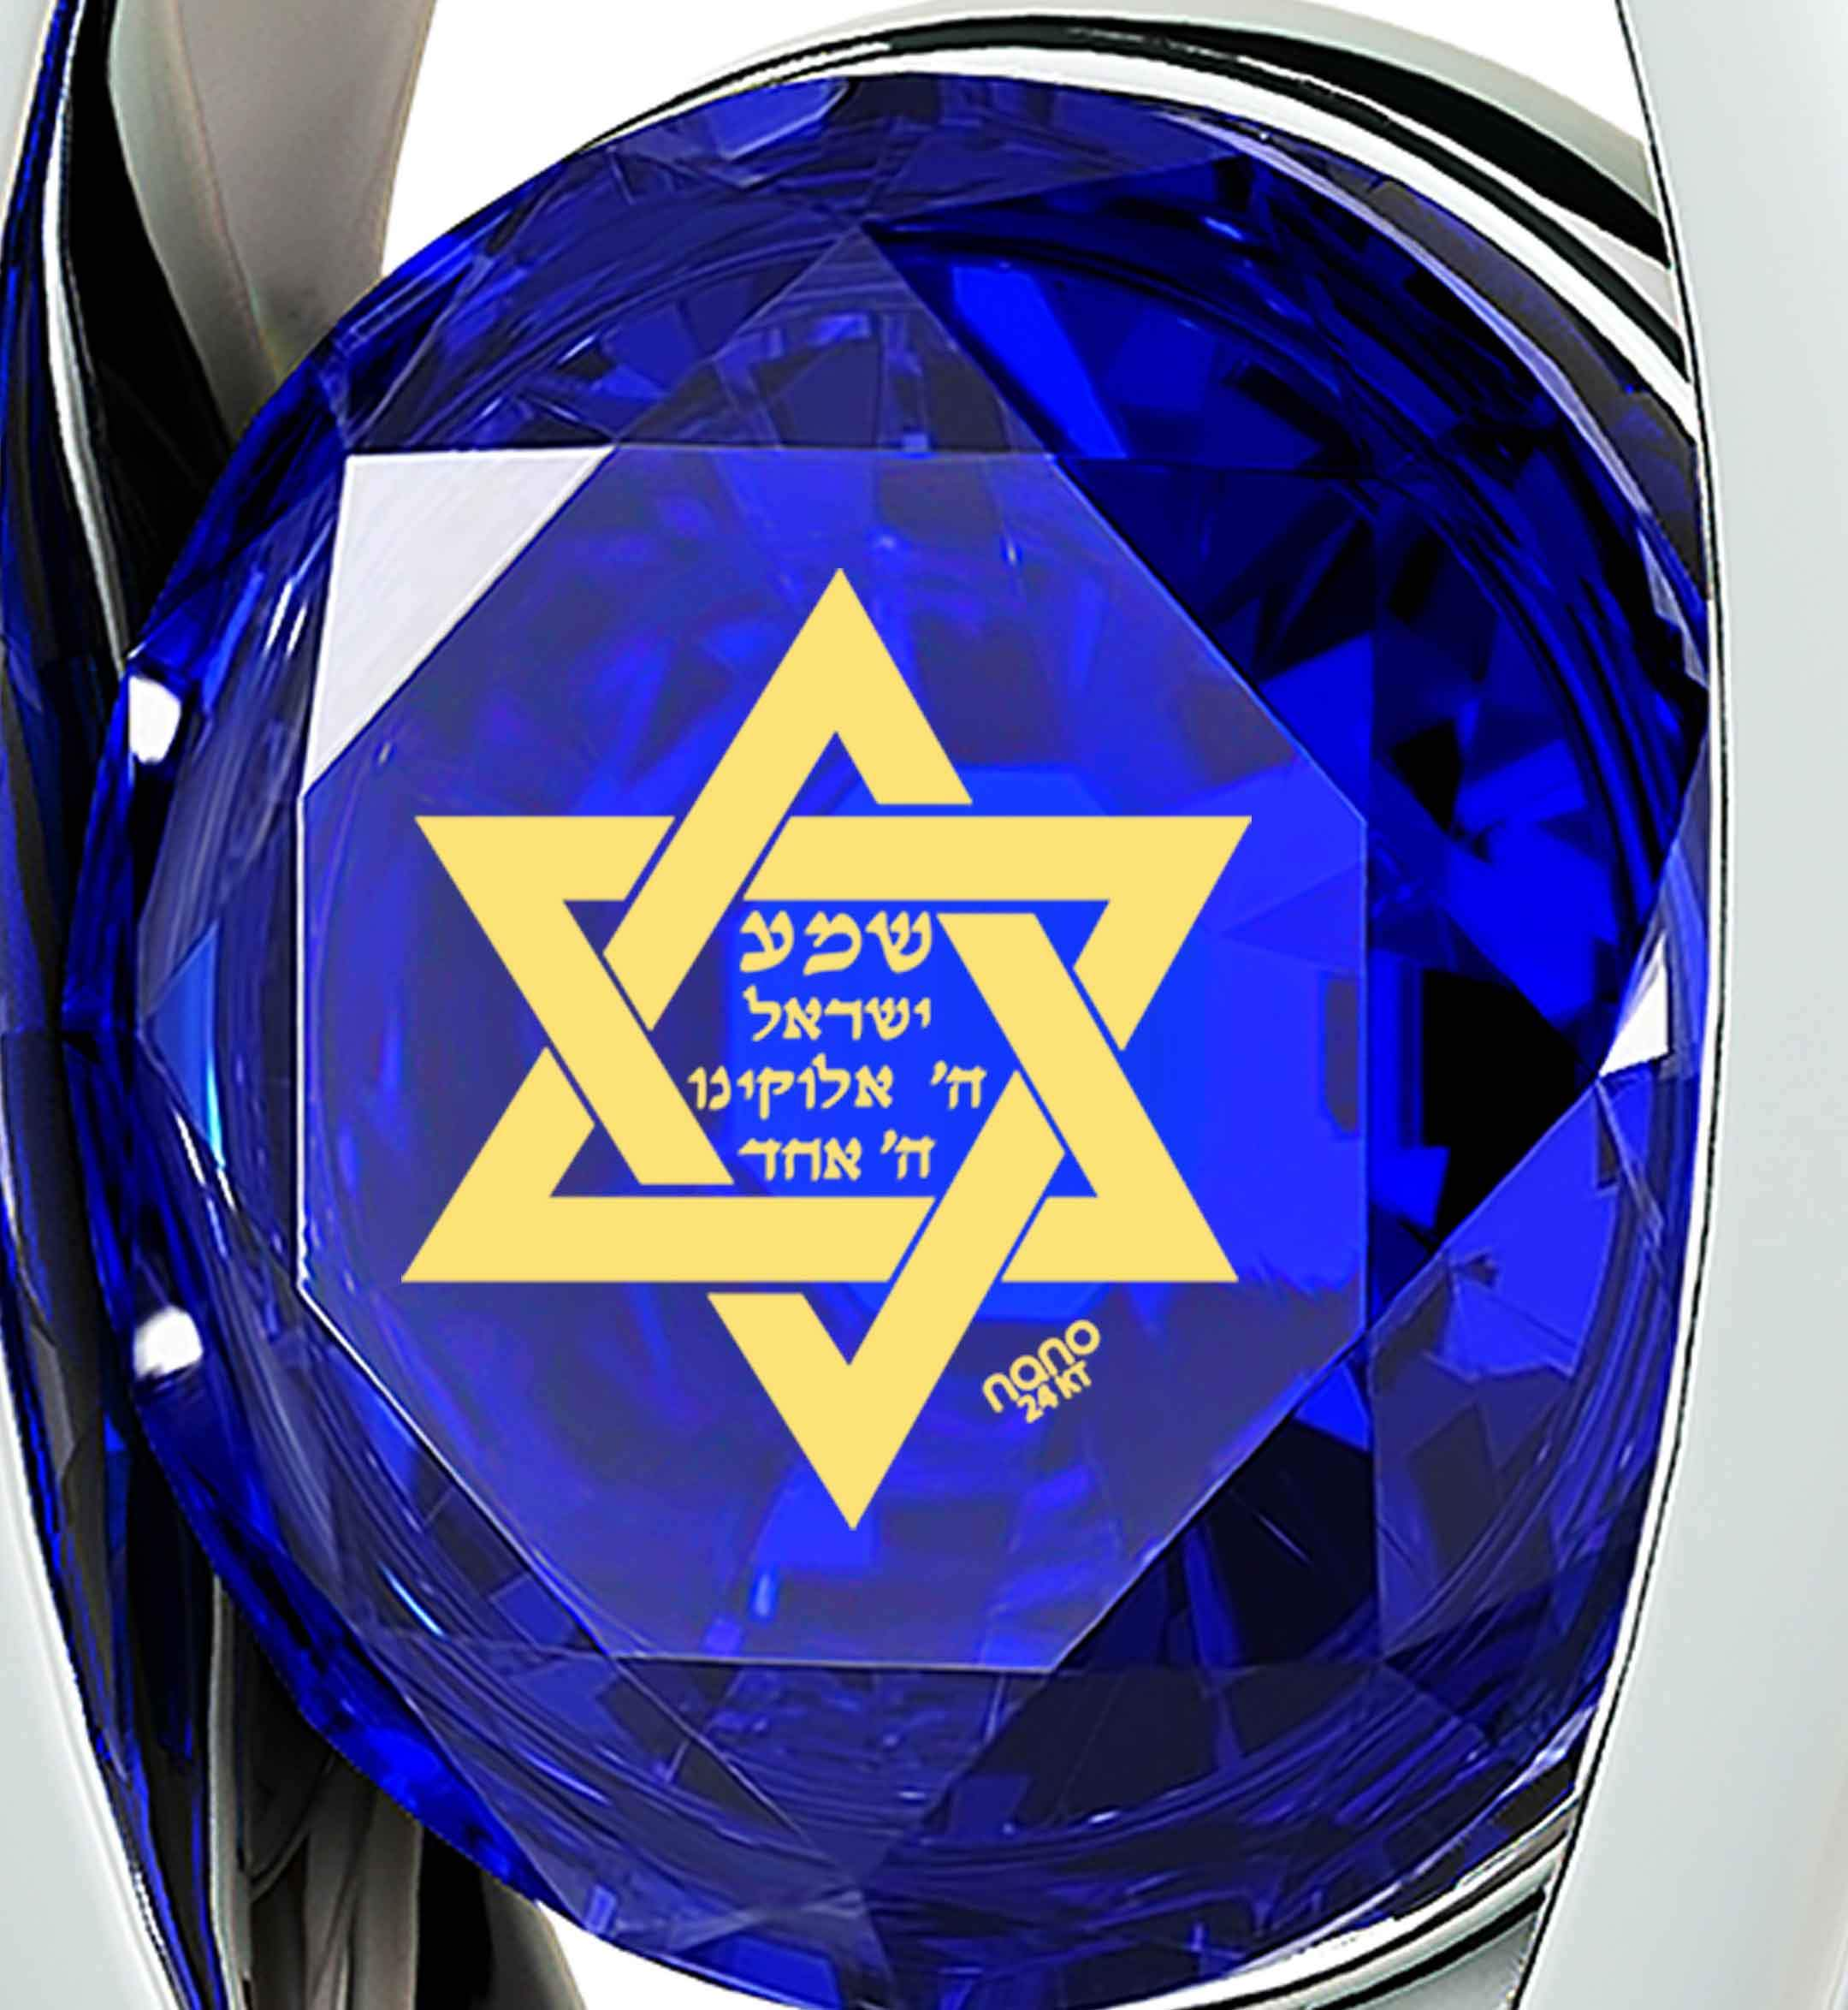 """Shema Yisrael"" Engraved in 24k, Judaica Jewelry with Blue Diamond Stone, Israeli Jewelry Designer, Nano Jewelry"